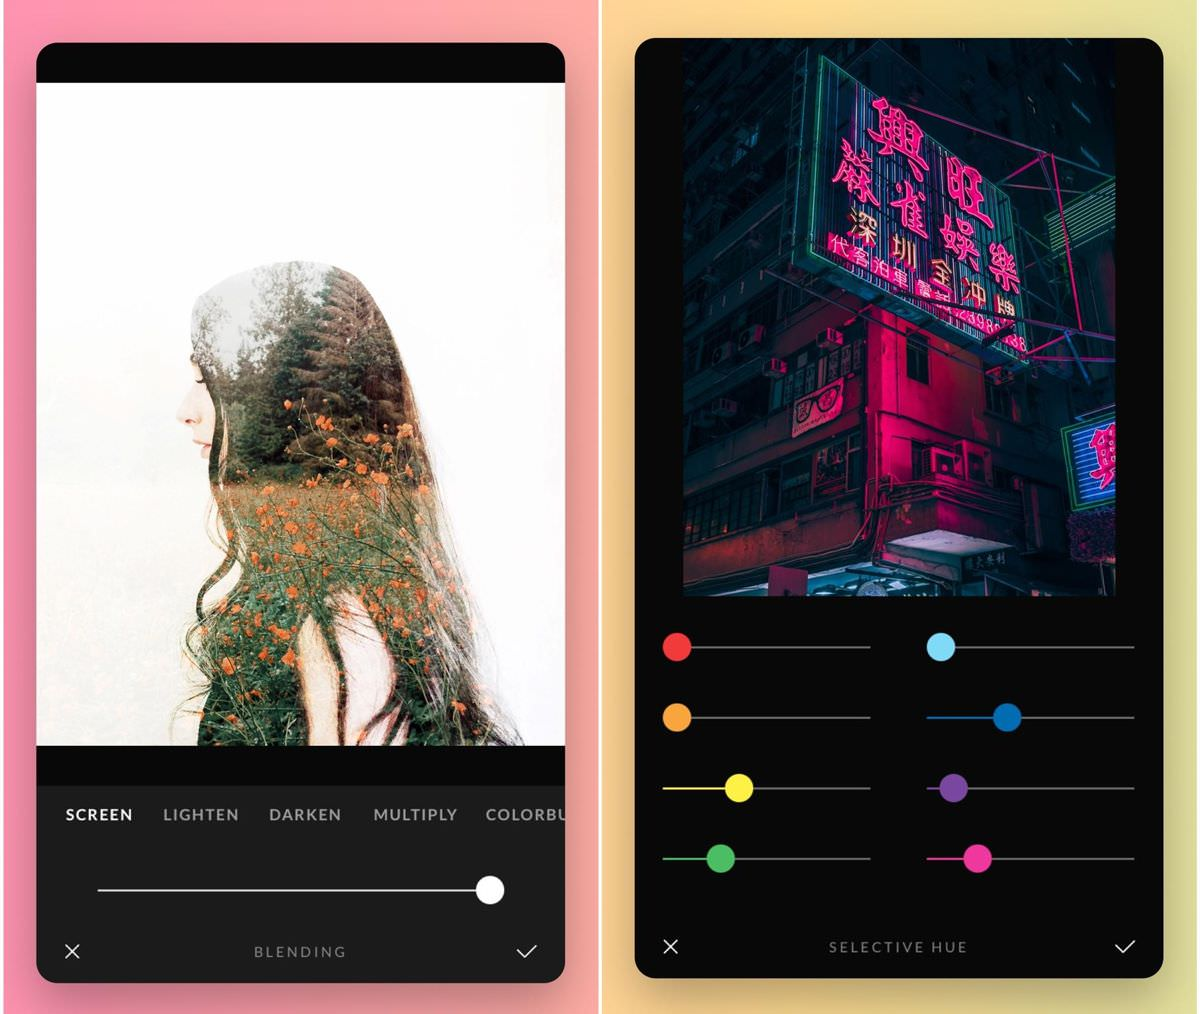 Afterlight - an image-editing app for iOS